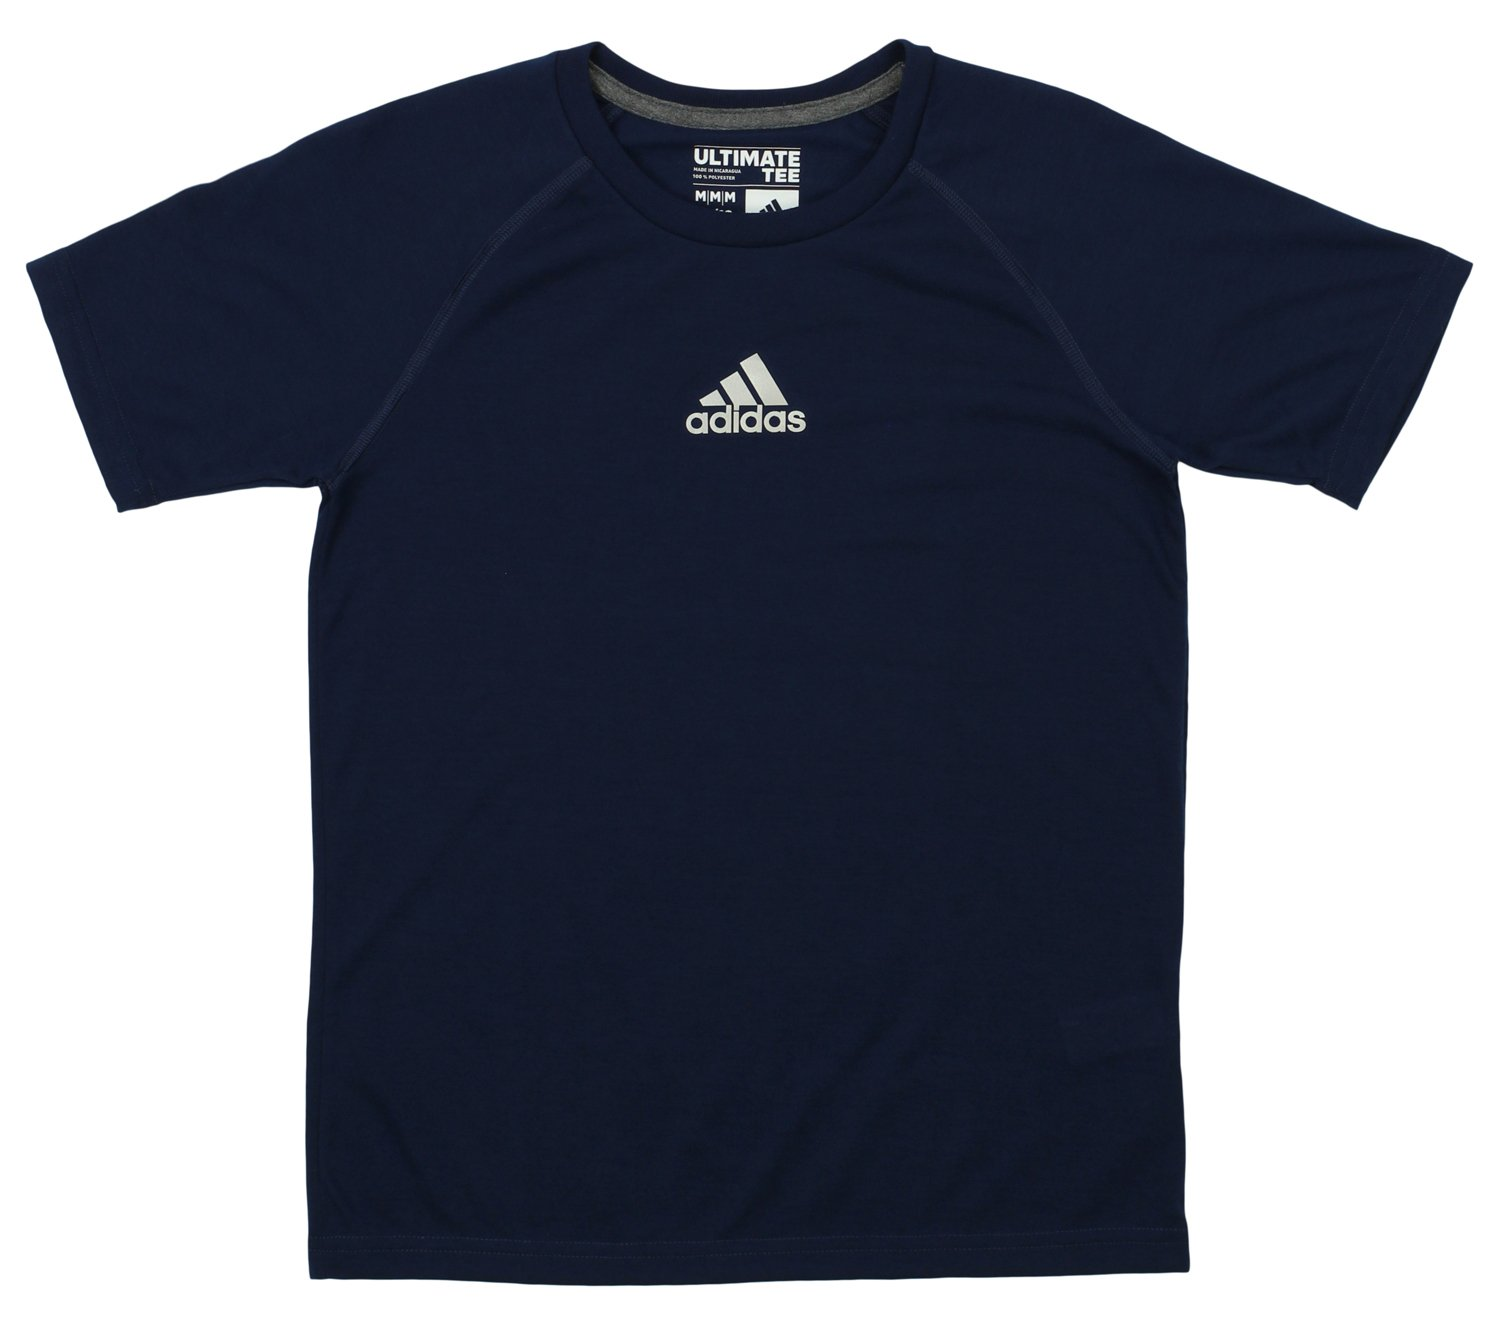 adidas Youth Boys Climalite Short Sleeve Performance Tee Collegiate Navy